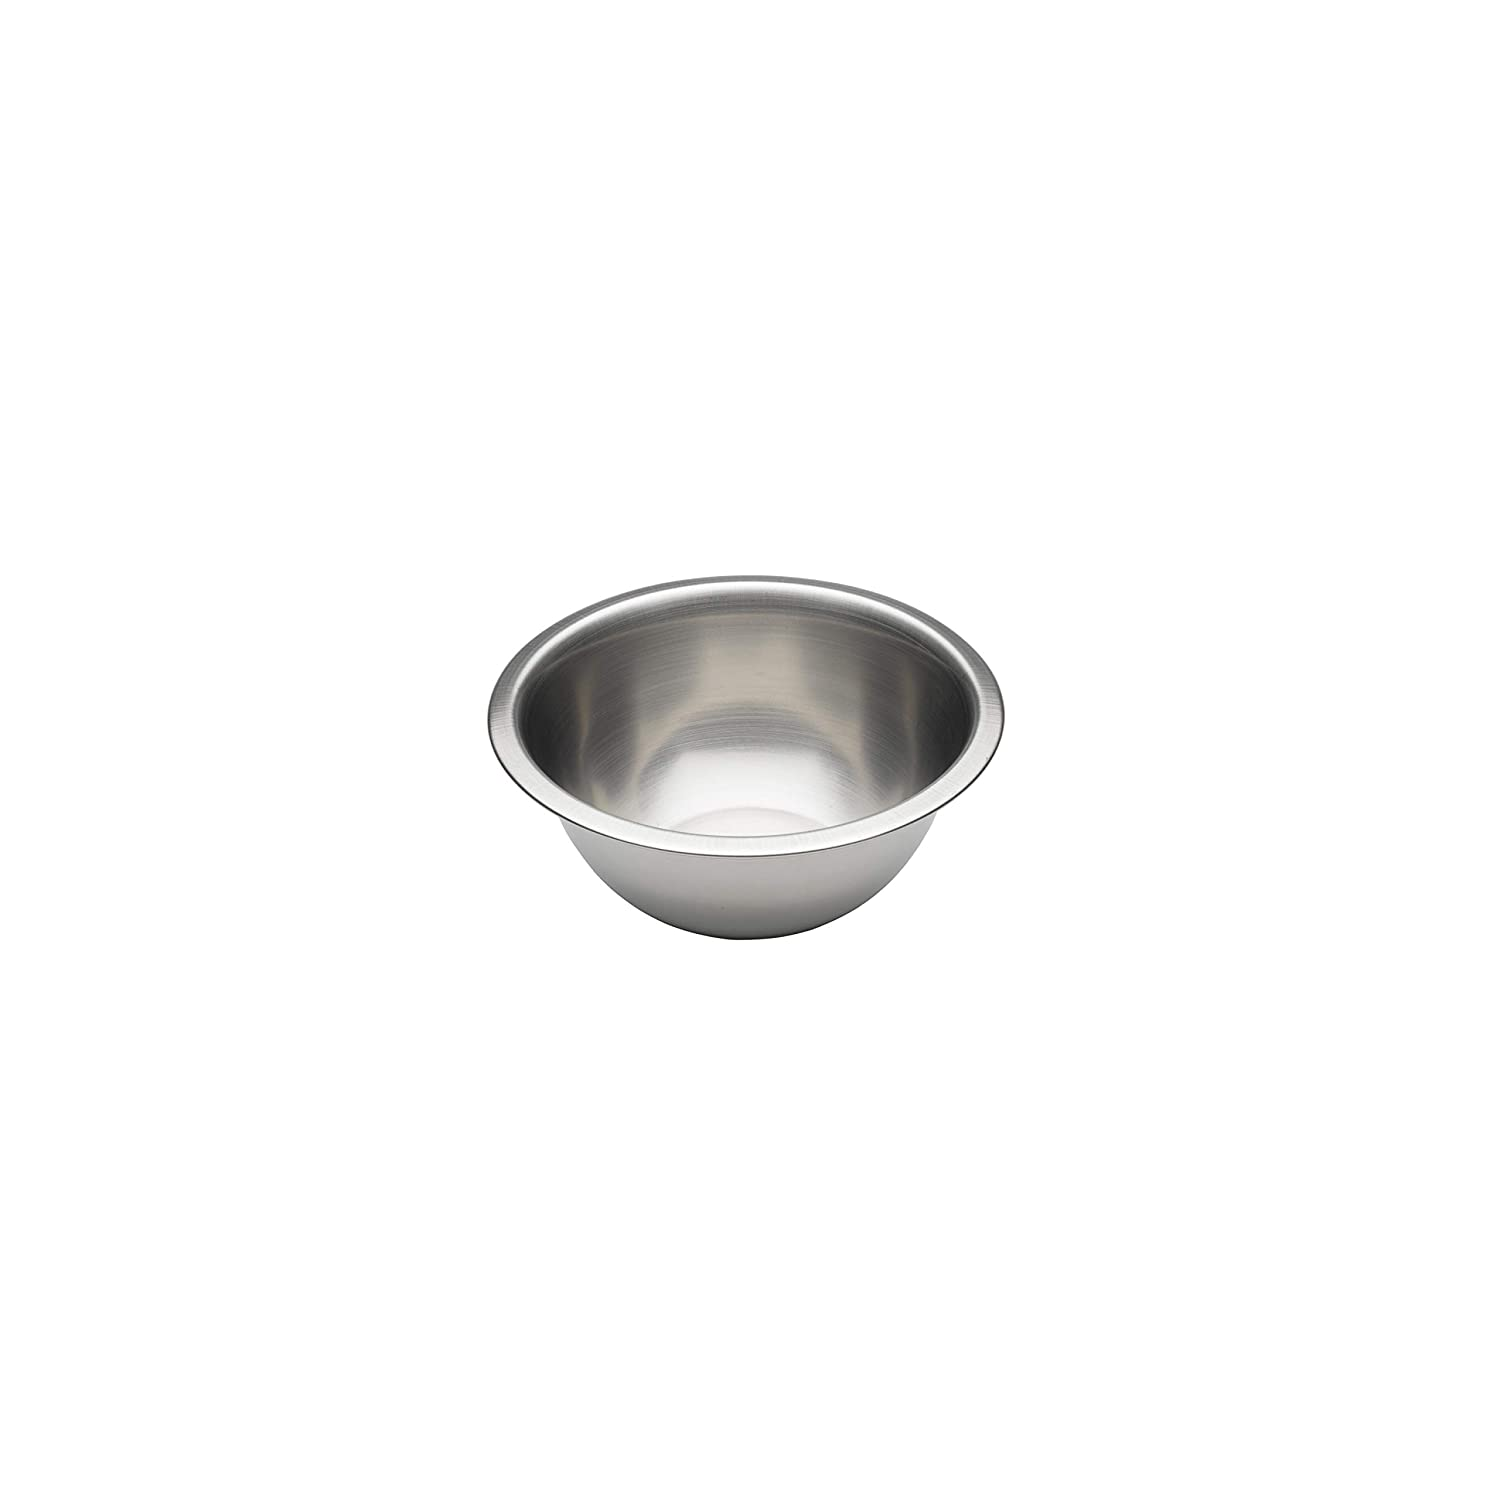 Chef Aid Bowl - Stainless Steel 13.6cm George East 10E00011